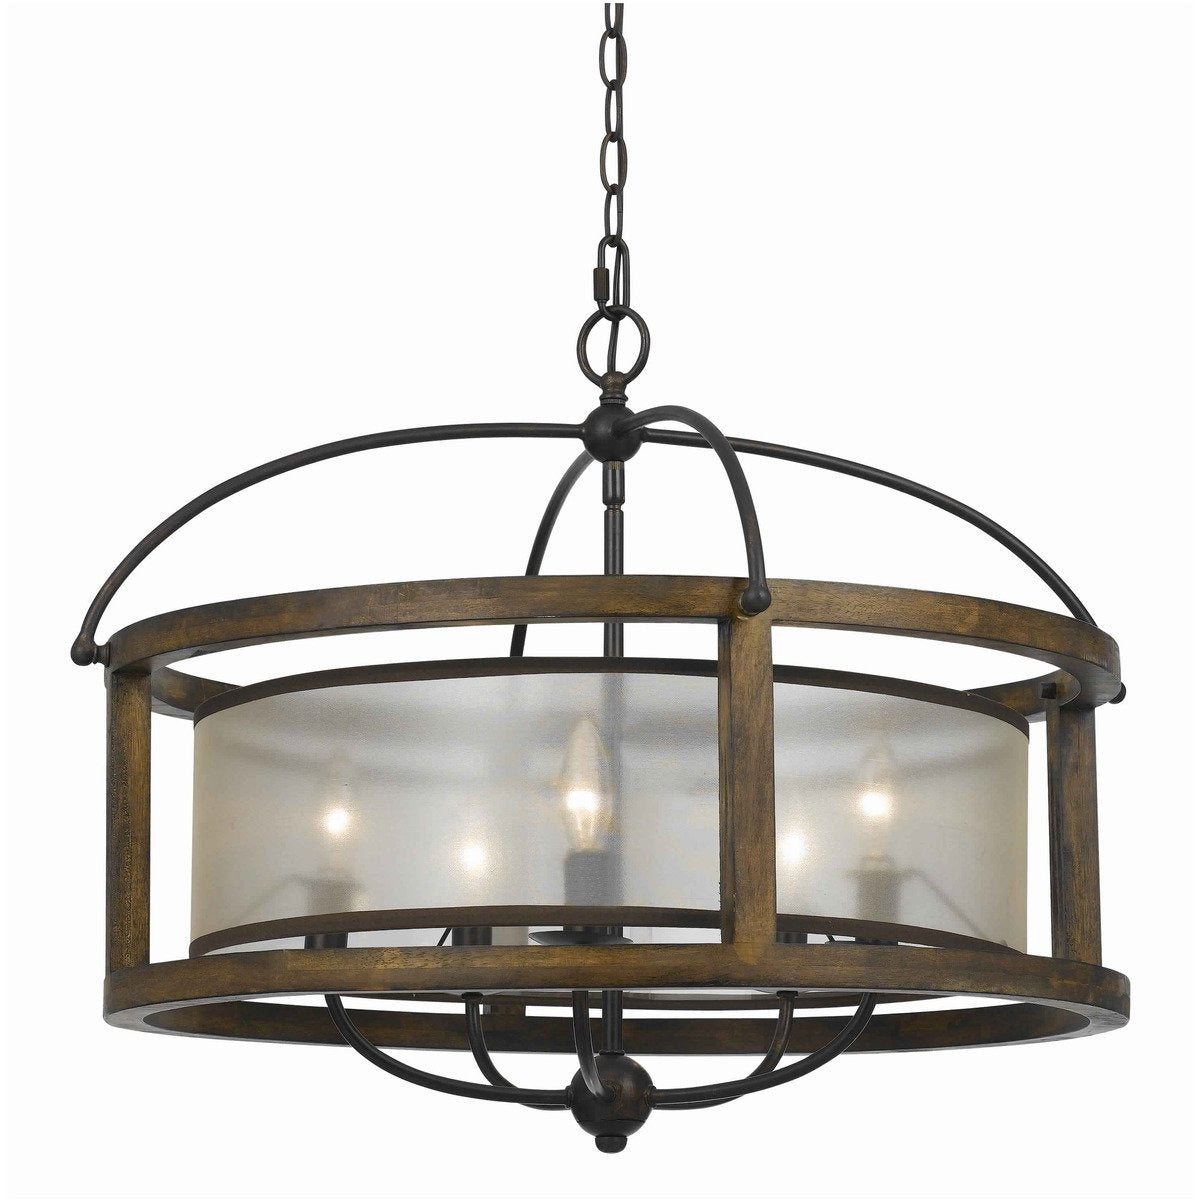 Chandeliers & Pendants - 5 Bulb Round Chandelier With Wooden Frame And Organza Striped Shade, Brown